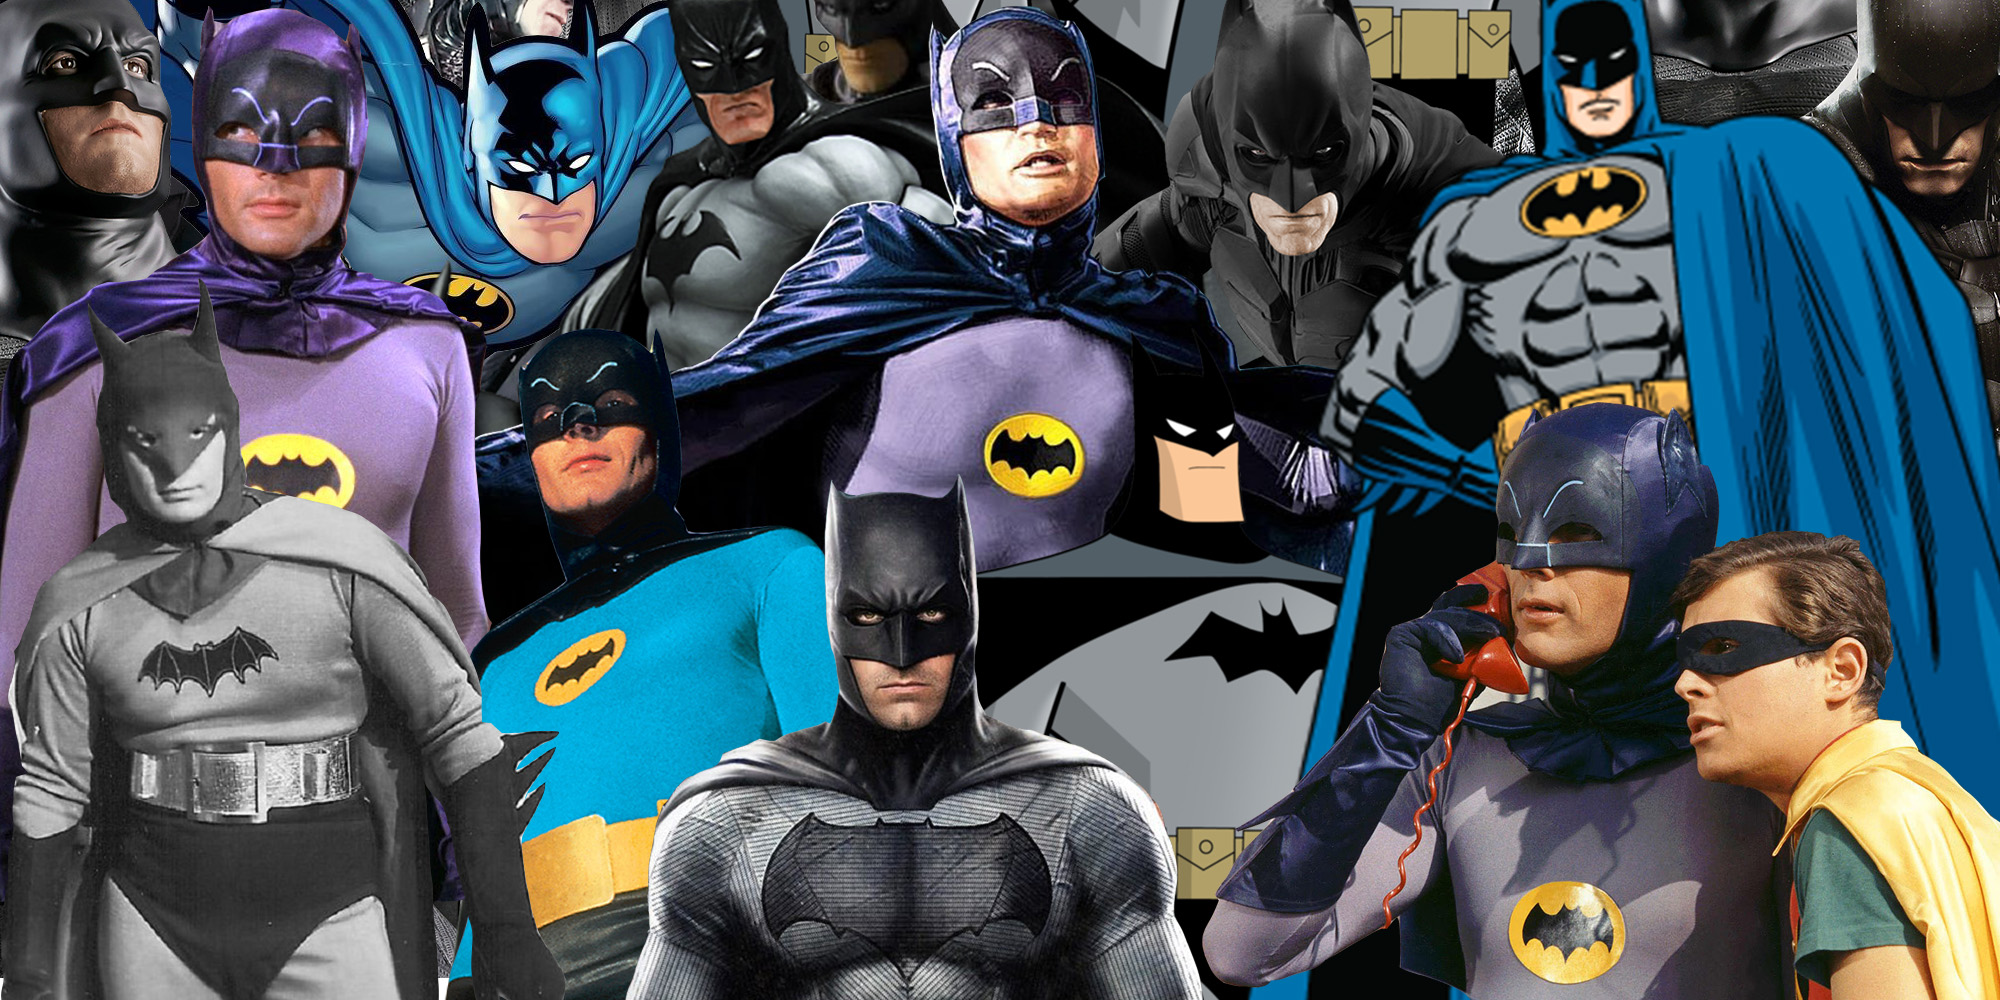 76 Years of Batman On-Screen: How the Caped Crusader Has Evolved Through the Years